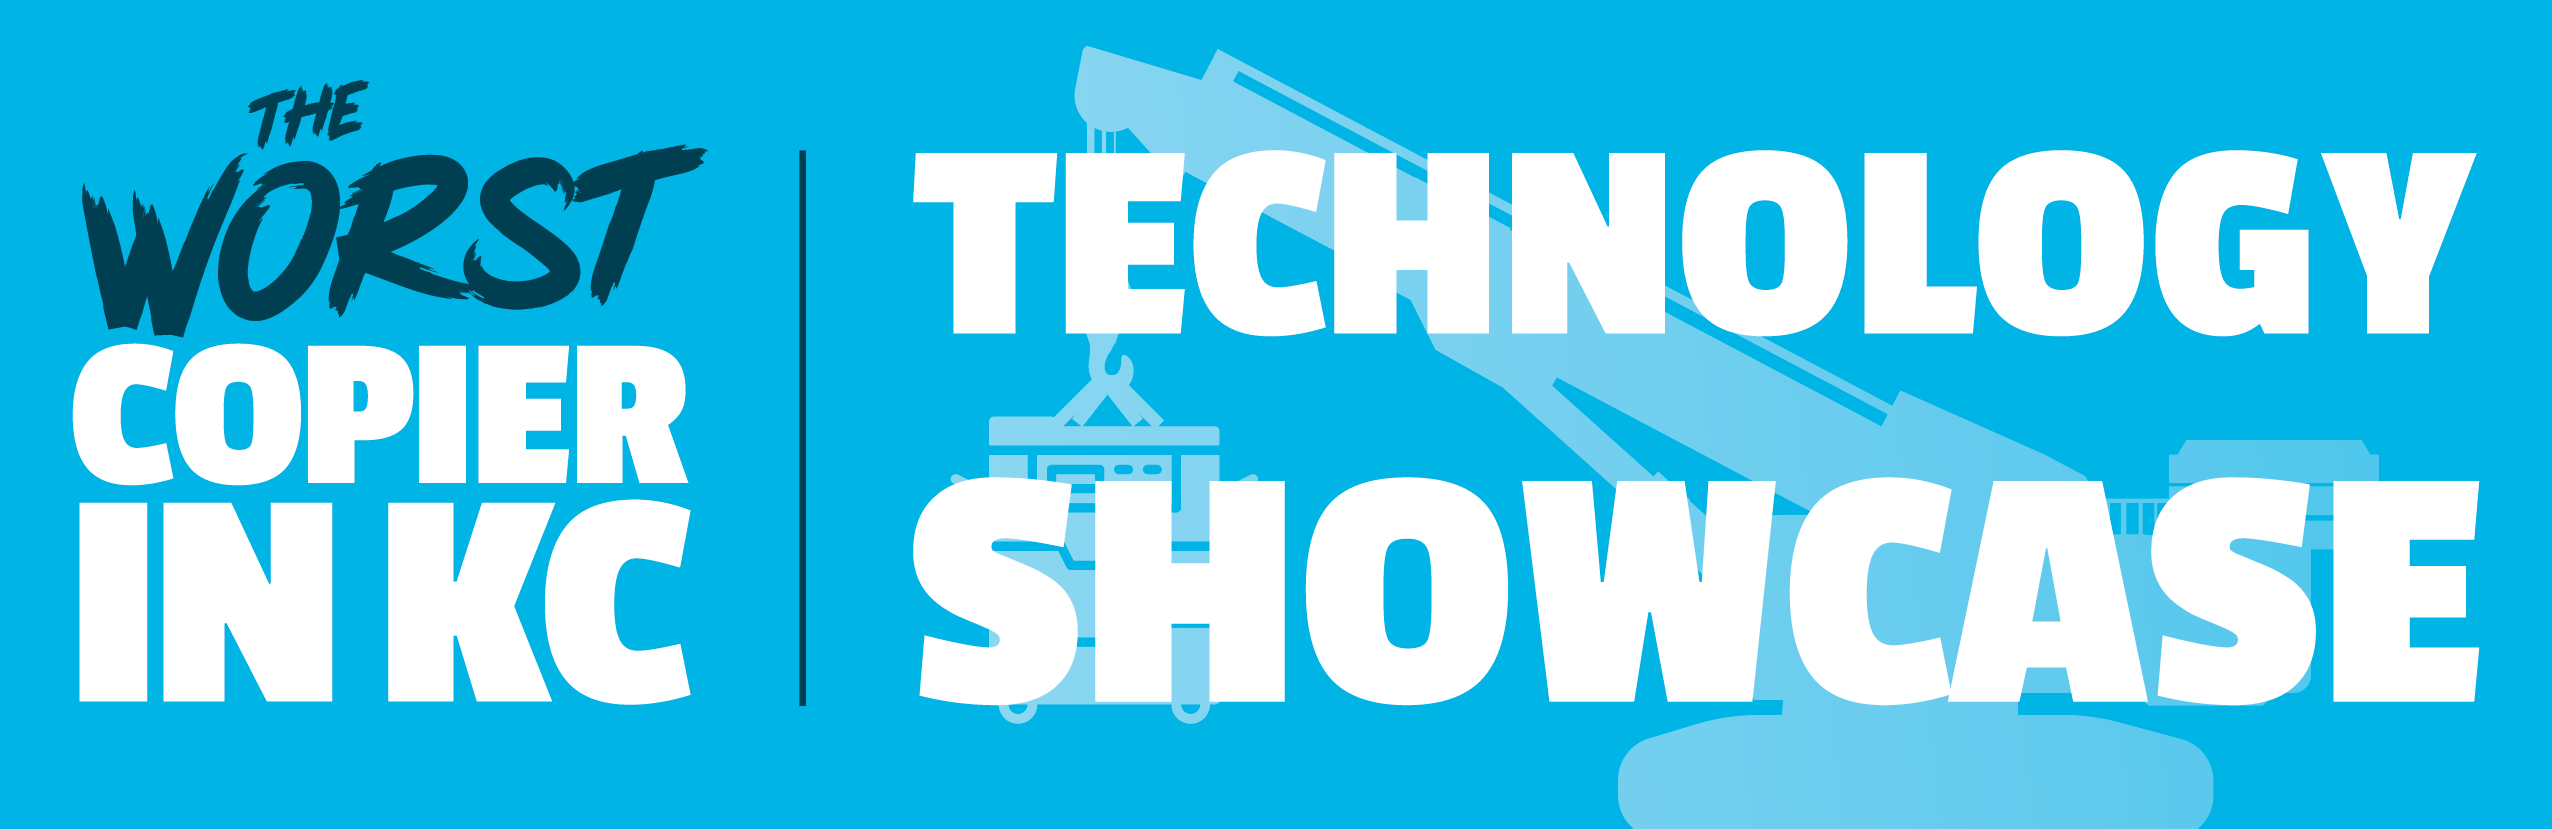 Technology Showcase Banner-01